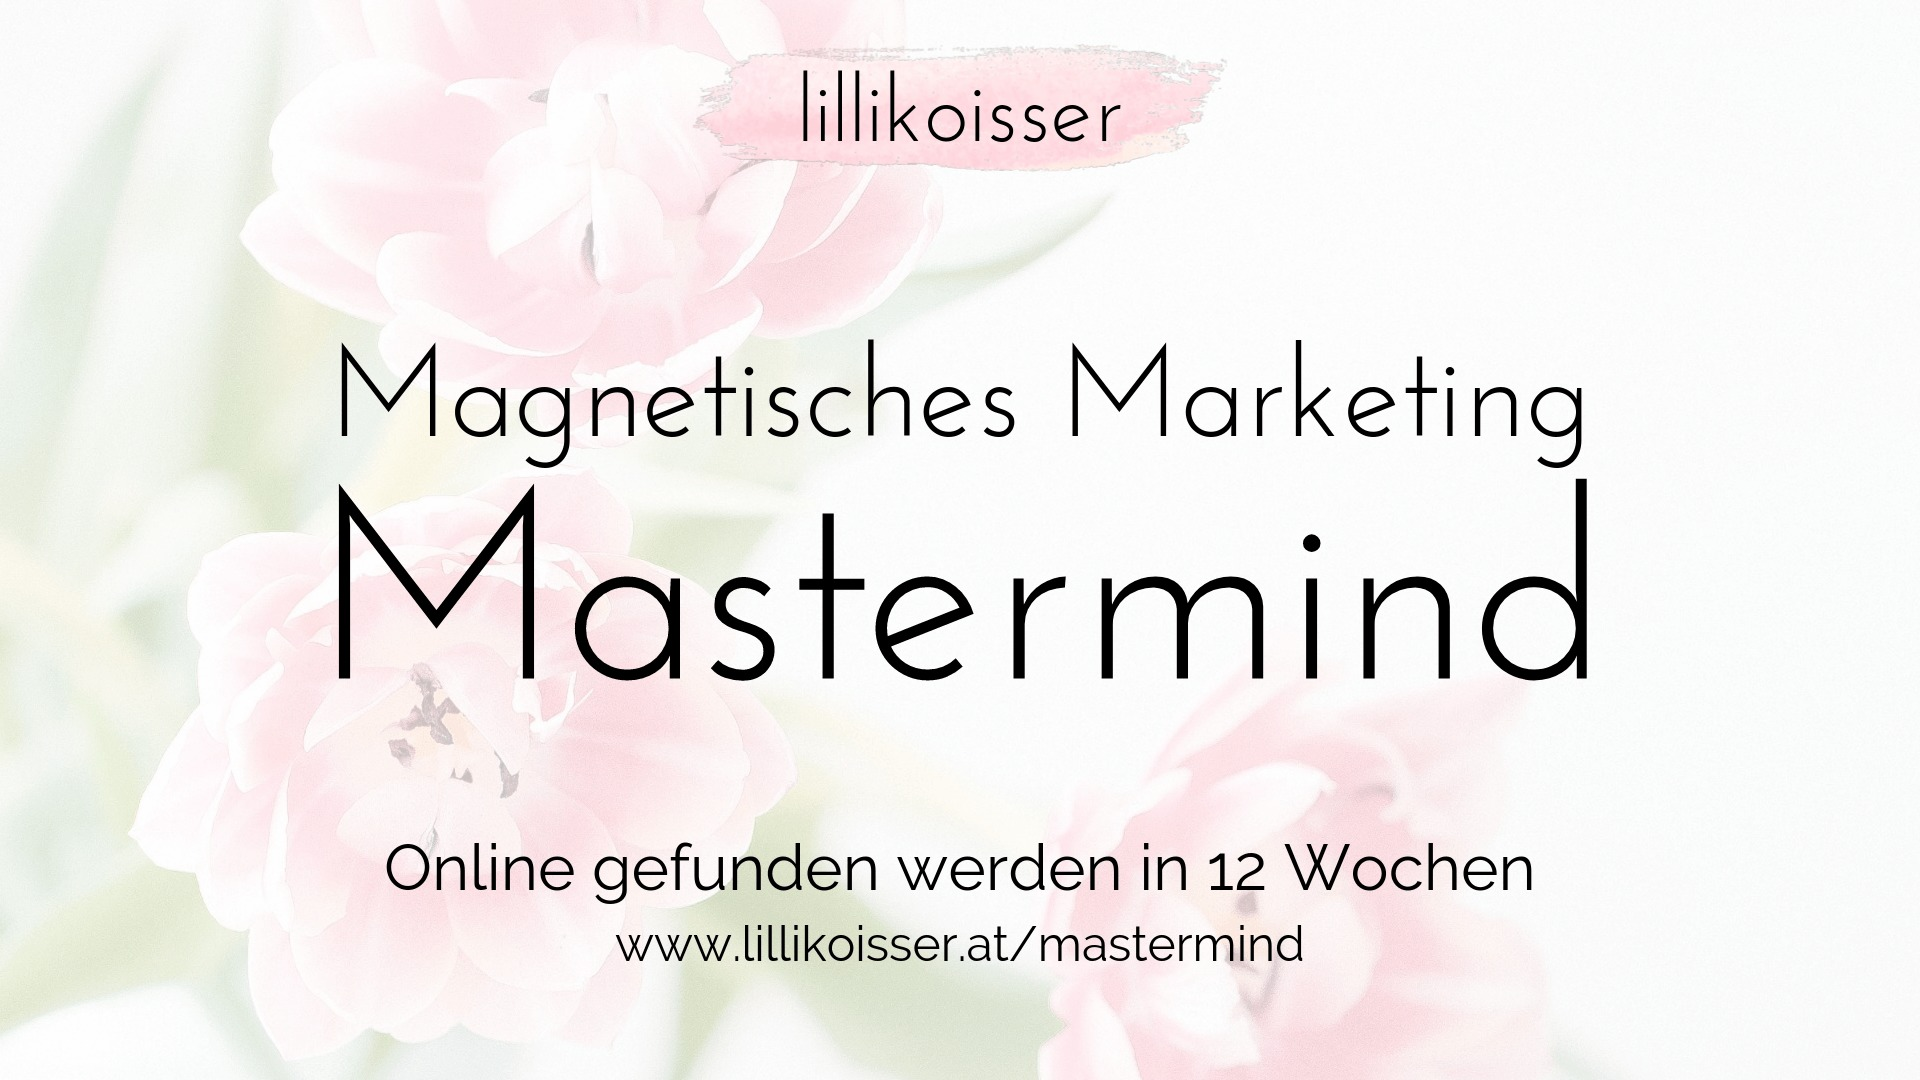 Magnetisches Marketing Mastermind